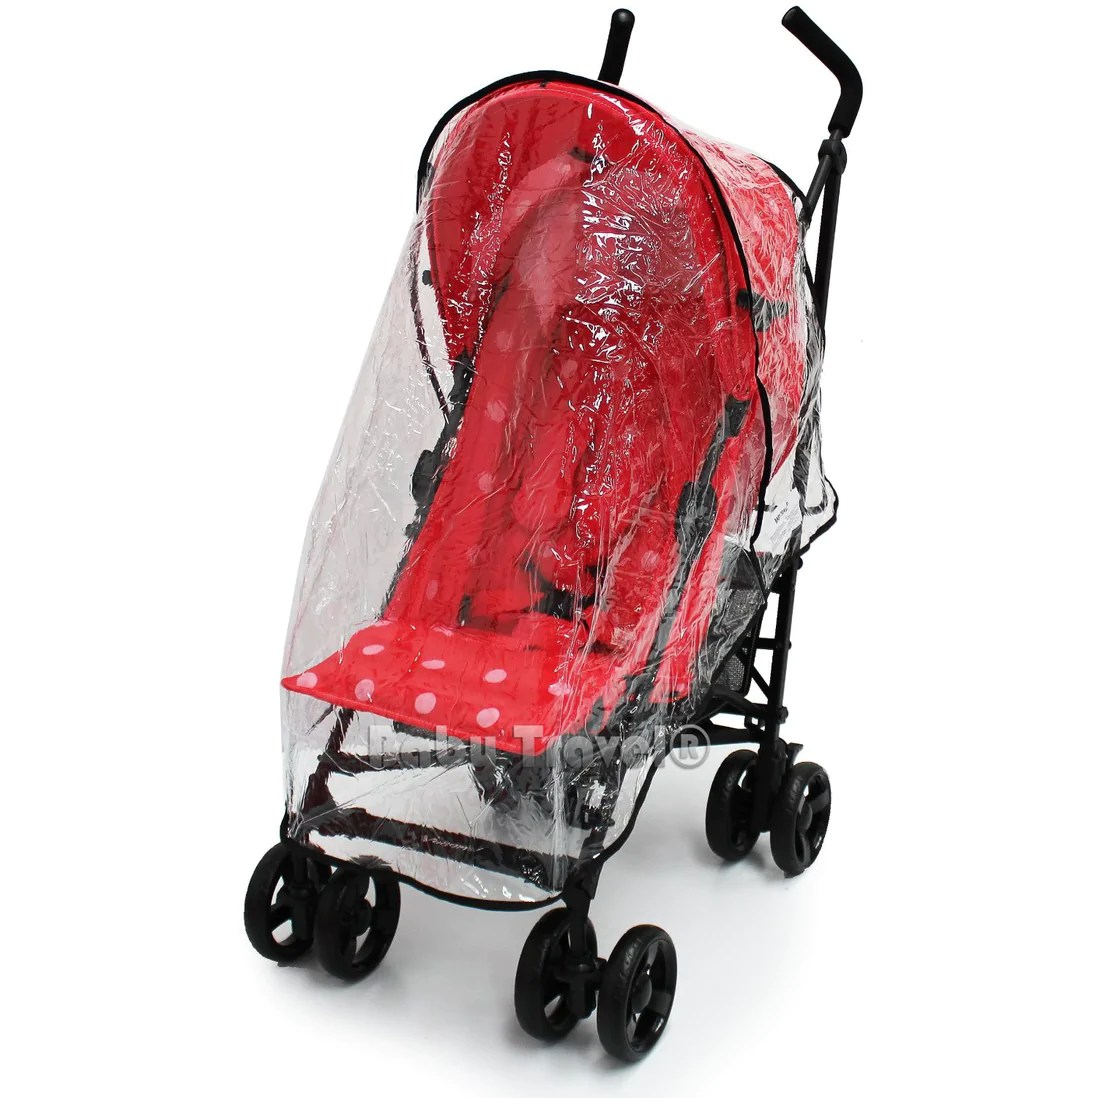 Easywalker Jogging Stroller Sale Now On Save Up To 50 Luxury Baby Prducts By Isafe